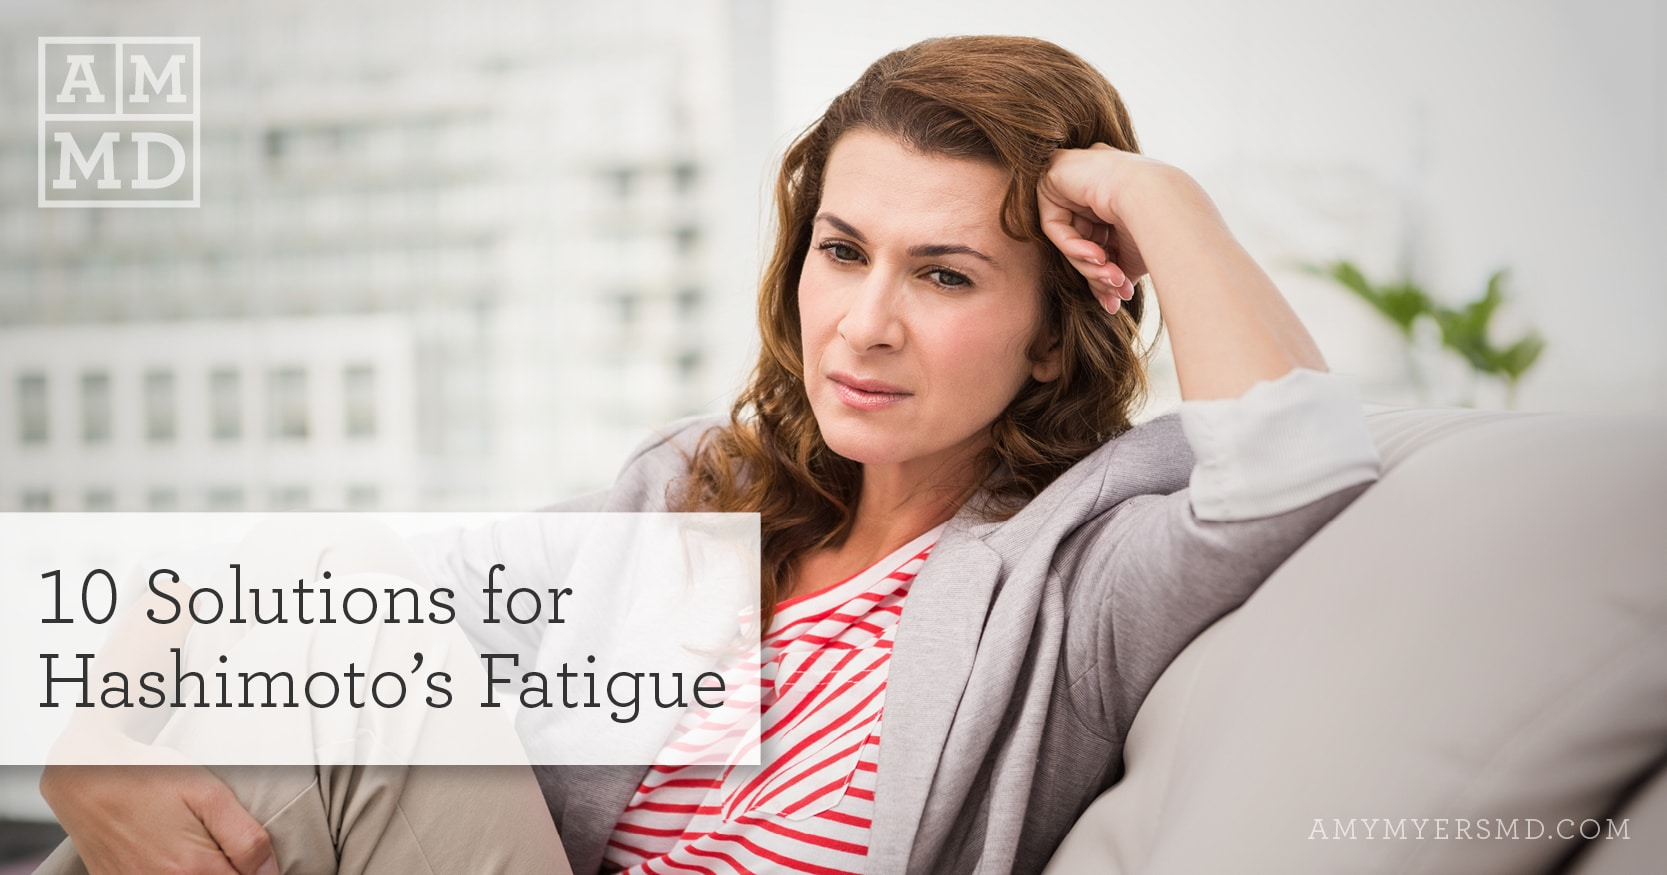 10 Solutions for Hashimoto's Fatigue - Woman Sitting and Thinking - Amy Myers MD